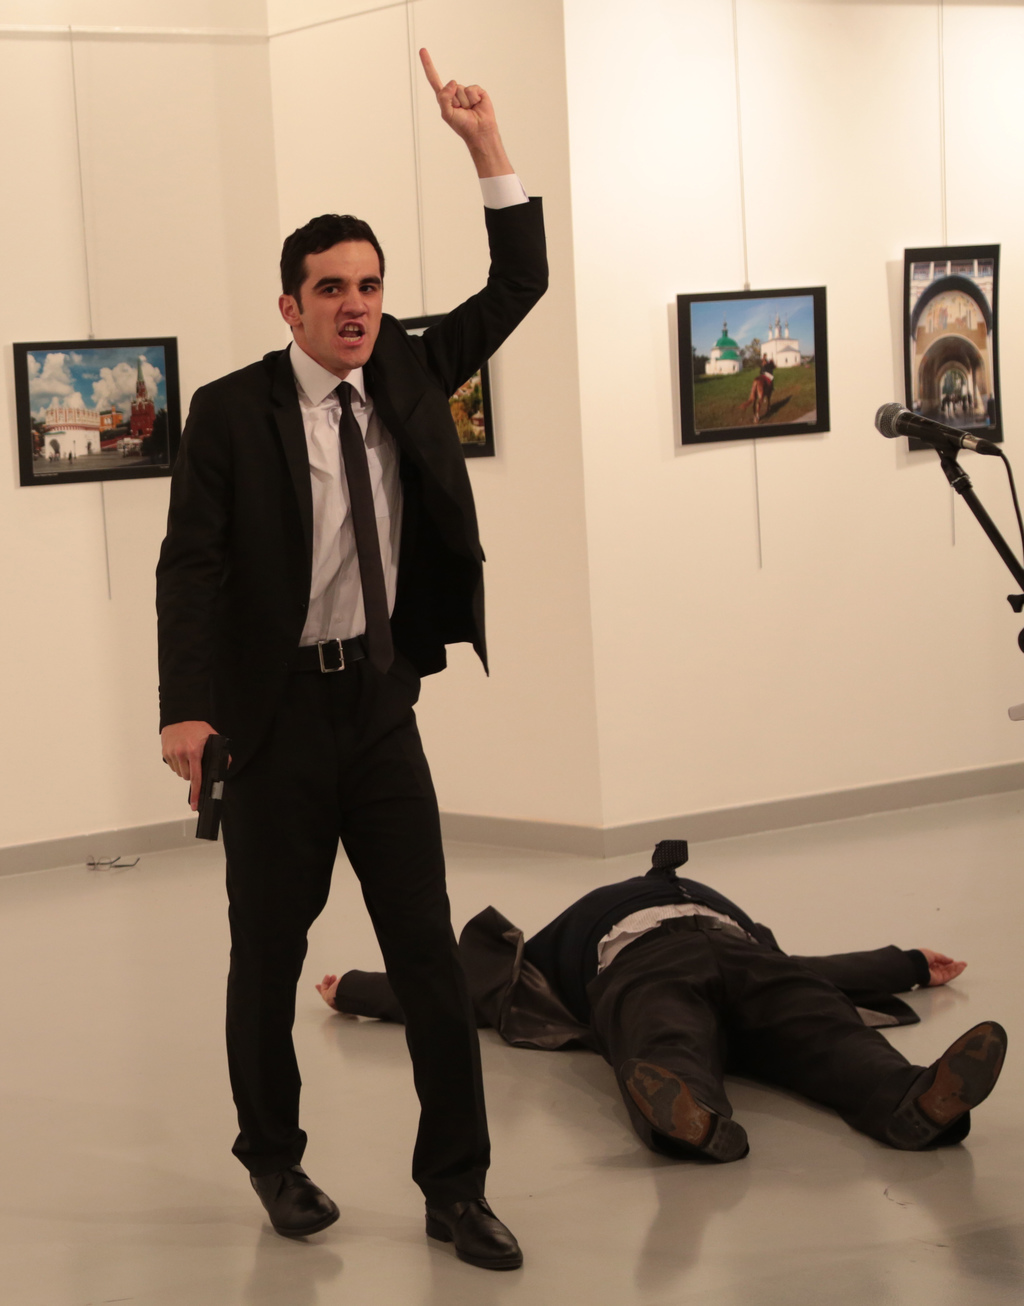 A man gestures after shooting Andrei Karlov, the Russian Ambassador to Turkey, on the floor, at a photo gallery in Ankara, Turkey, Mond...